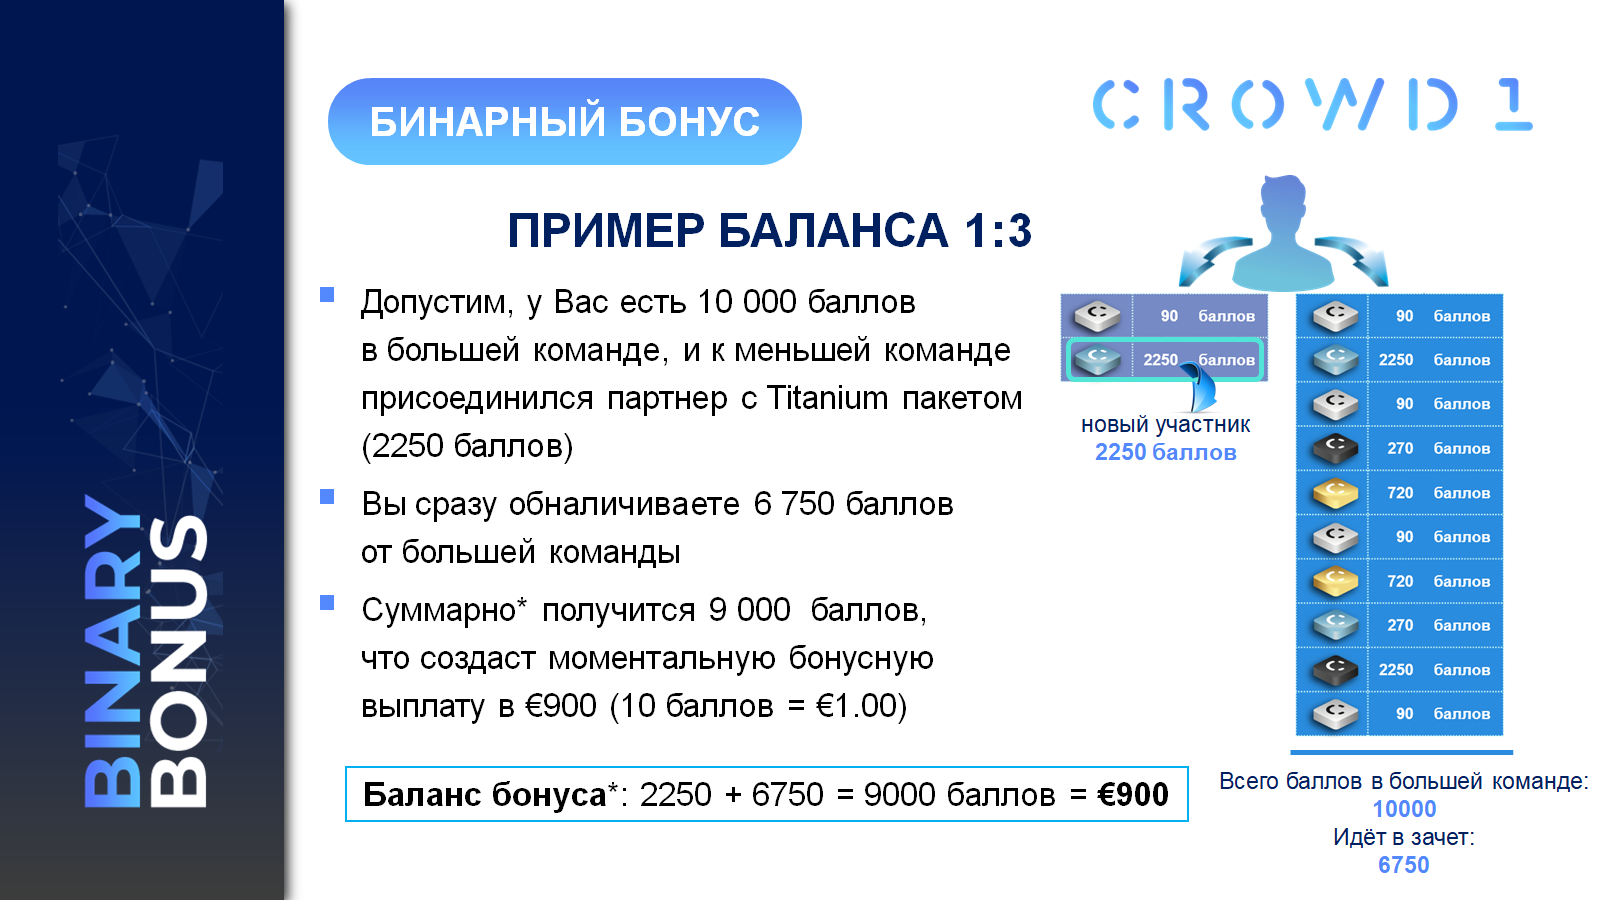 BINARY BONUS, пример баланса 1-3, в проекте CROWD 1